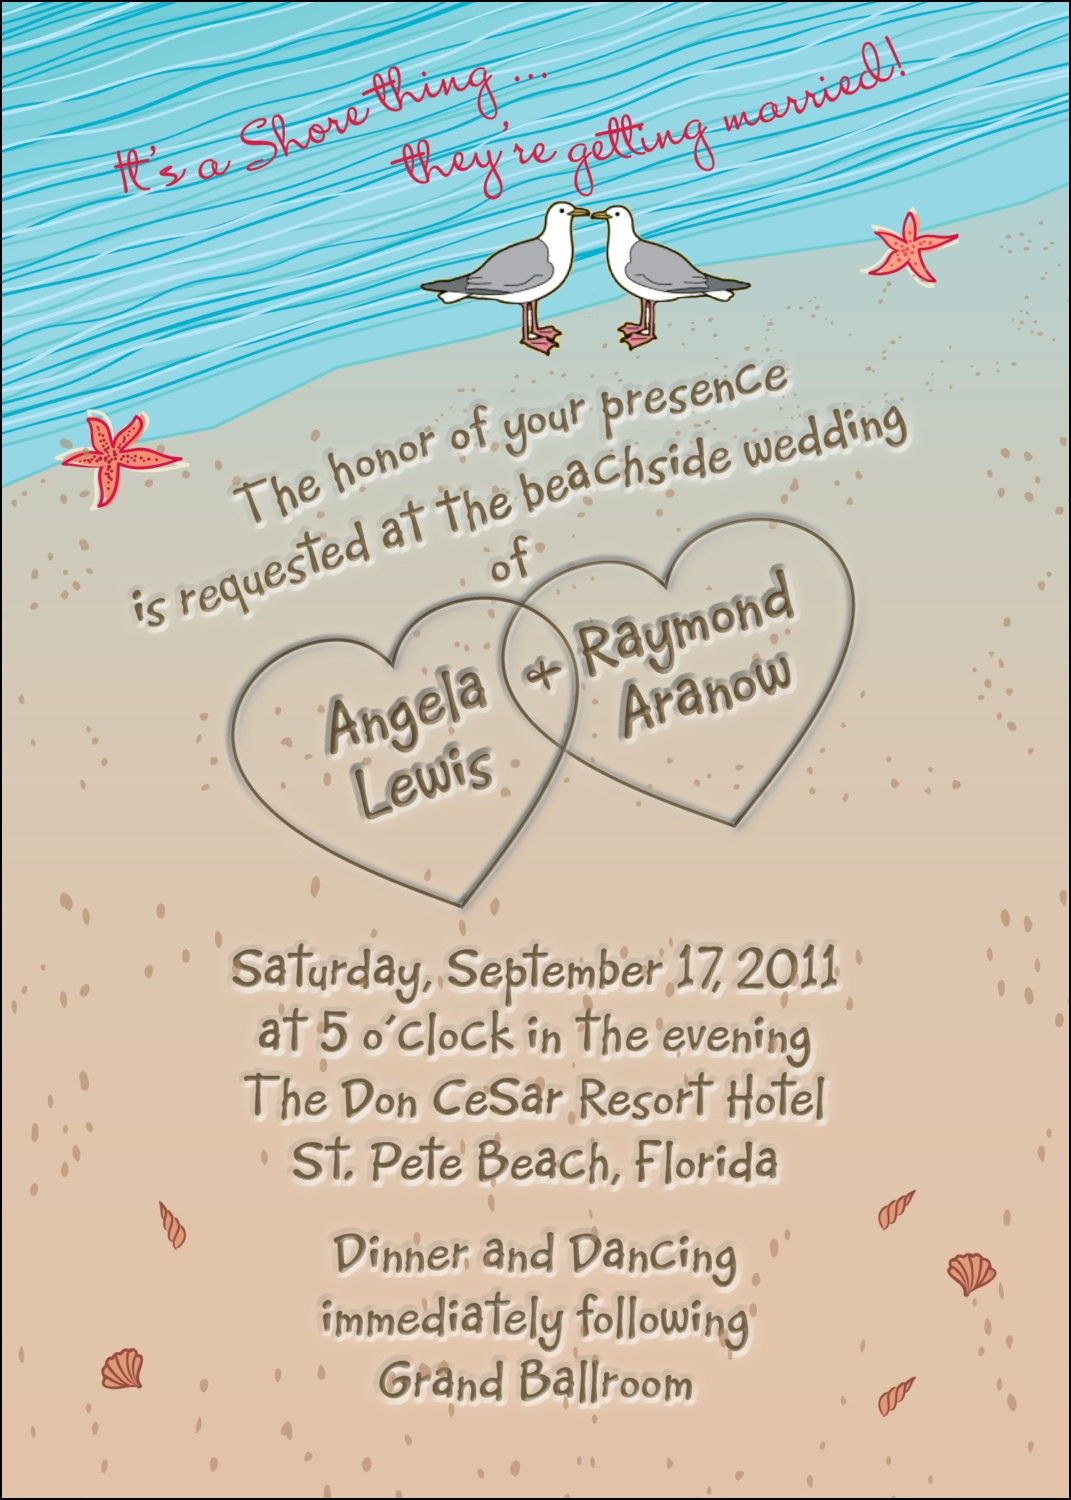 Wedding invitation wording to invite friends dibujos pinterest wedding invitation wording to invite friends stopboris